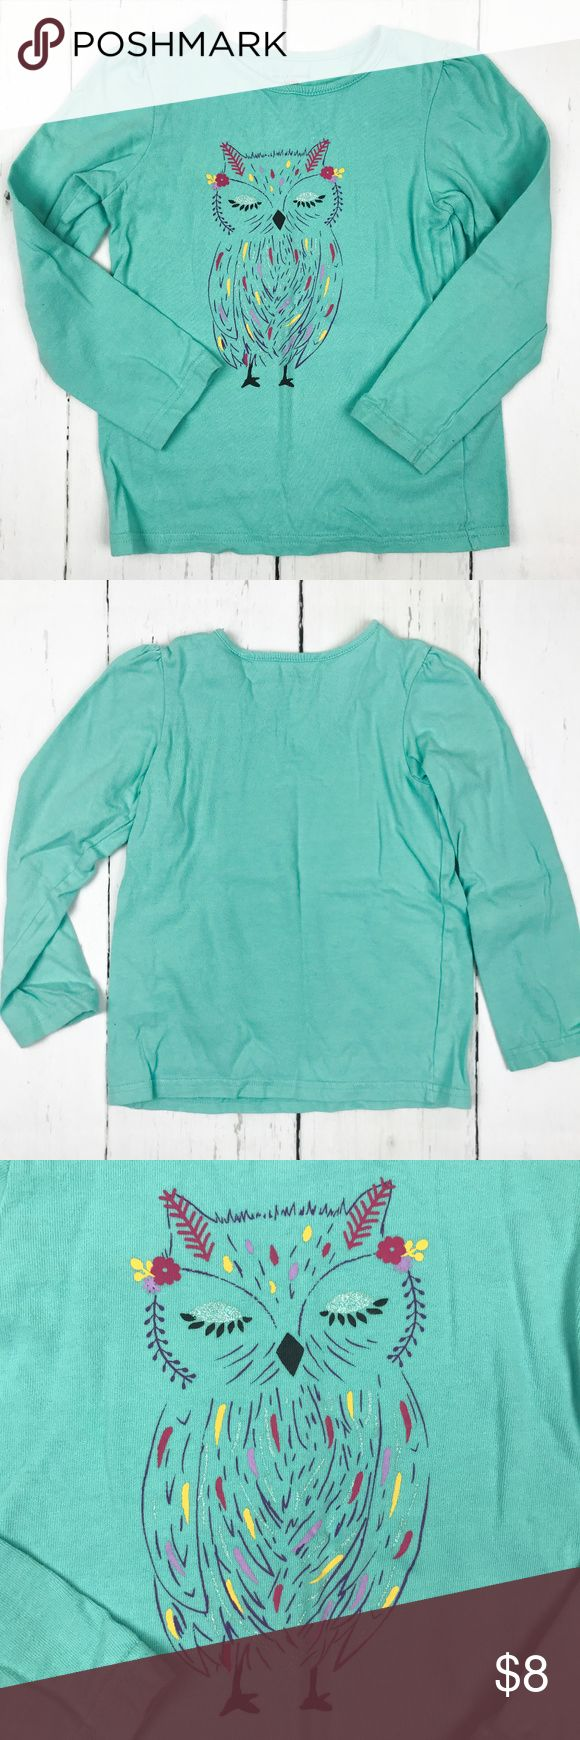 Girls Long Sleeve Owl Tshirt Size 5T This turquoise long sleeve t-shirt has an owl print on the front. The shirt has a little looser fit depending on your child and is a great basic! Lightweight, this shirt can easily be layered or worn with leggings or a skirt.   From Falls Creek. Size 5T. 100% Cotton. Machine wash cold with like colors, delicate cycle. Tumble dry low. Shirts & Tops Tees - Long Sleeve